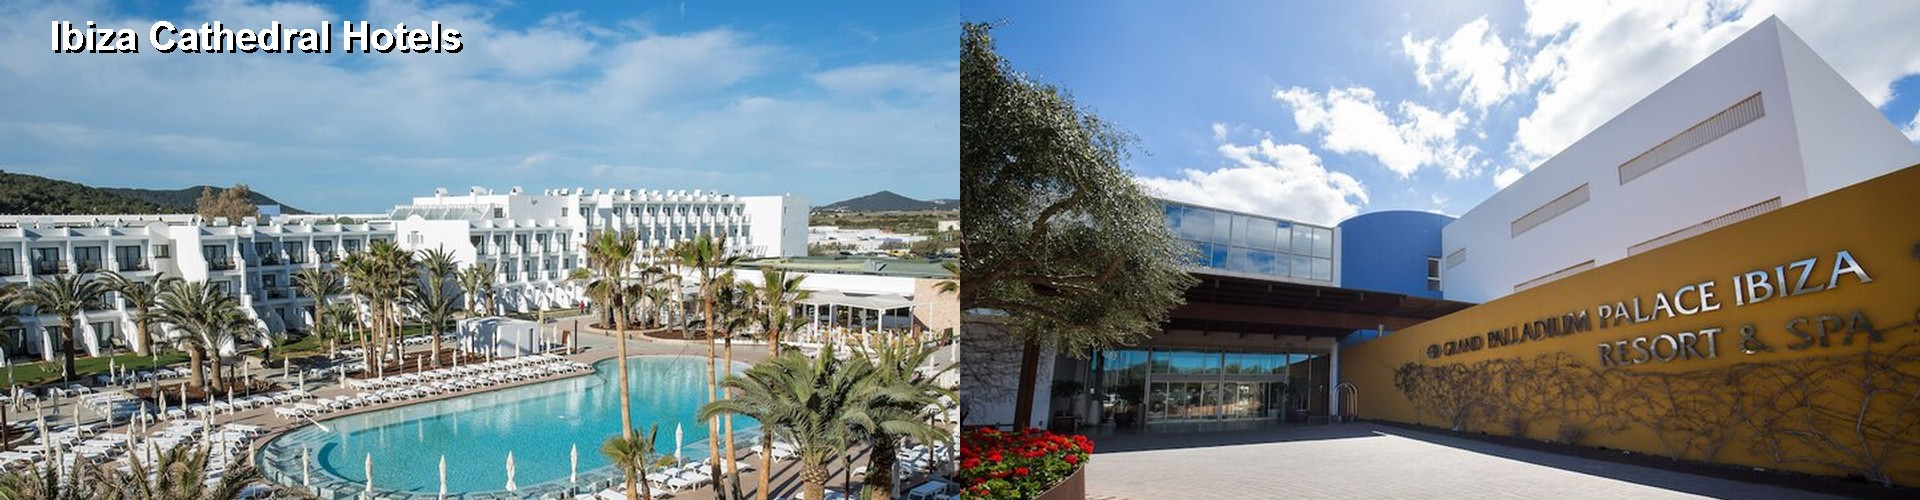 5 Best Hotels near Ibiza Cathedral